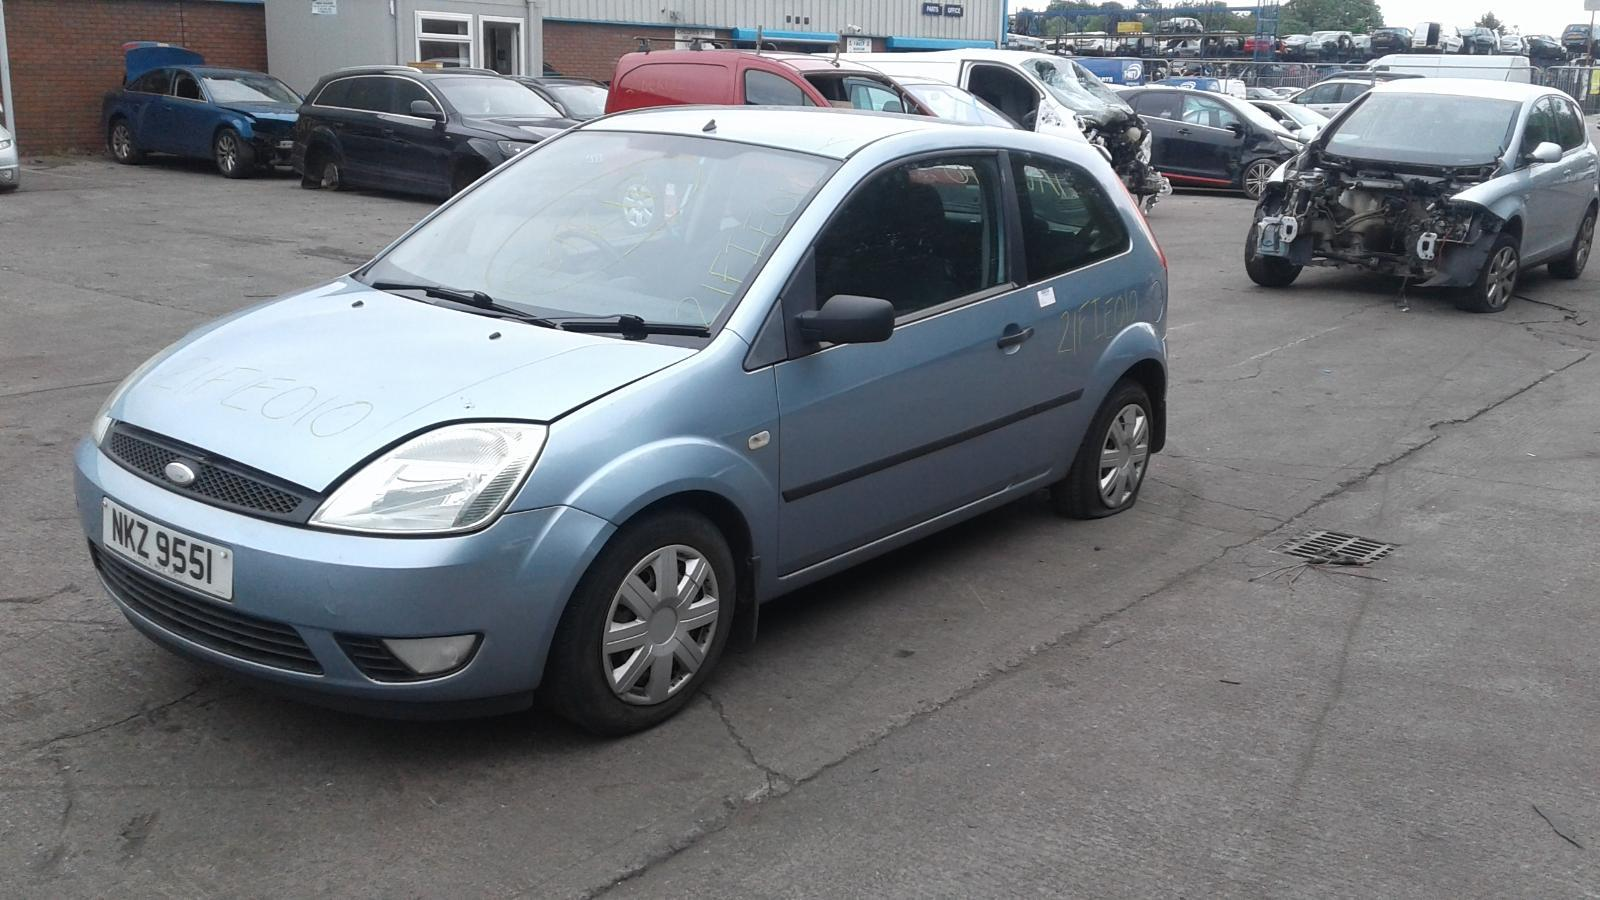 2005 FORD FIESTA Image